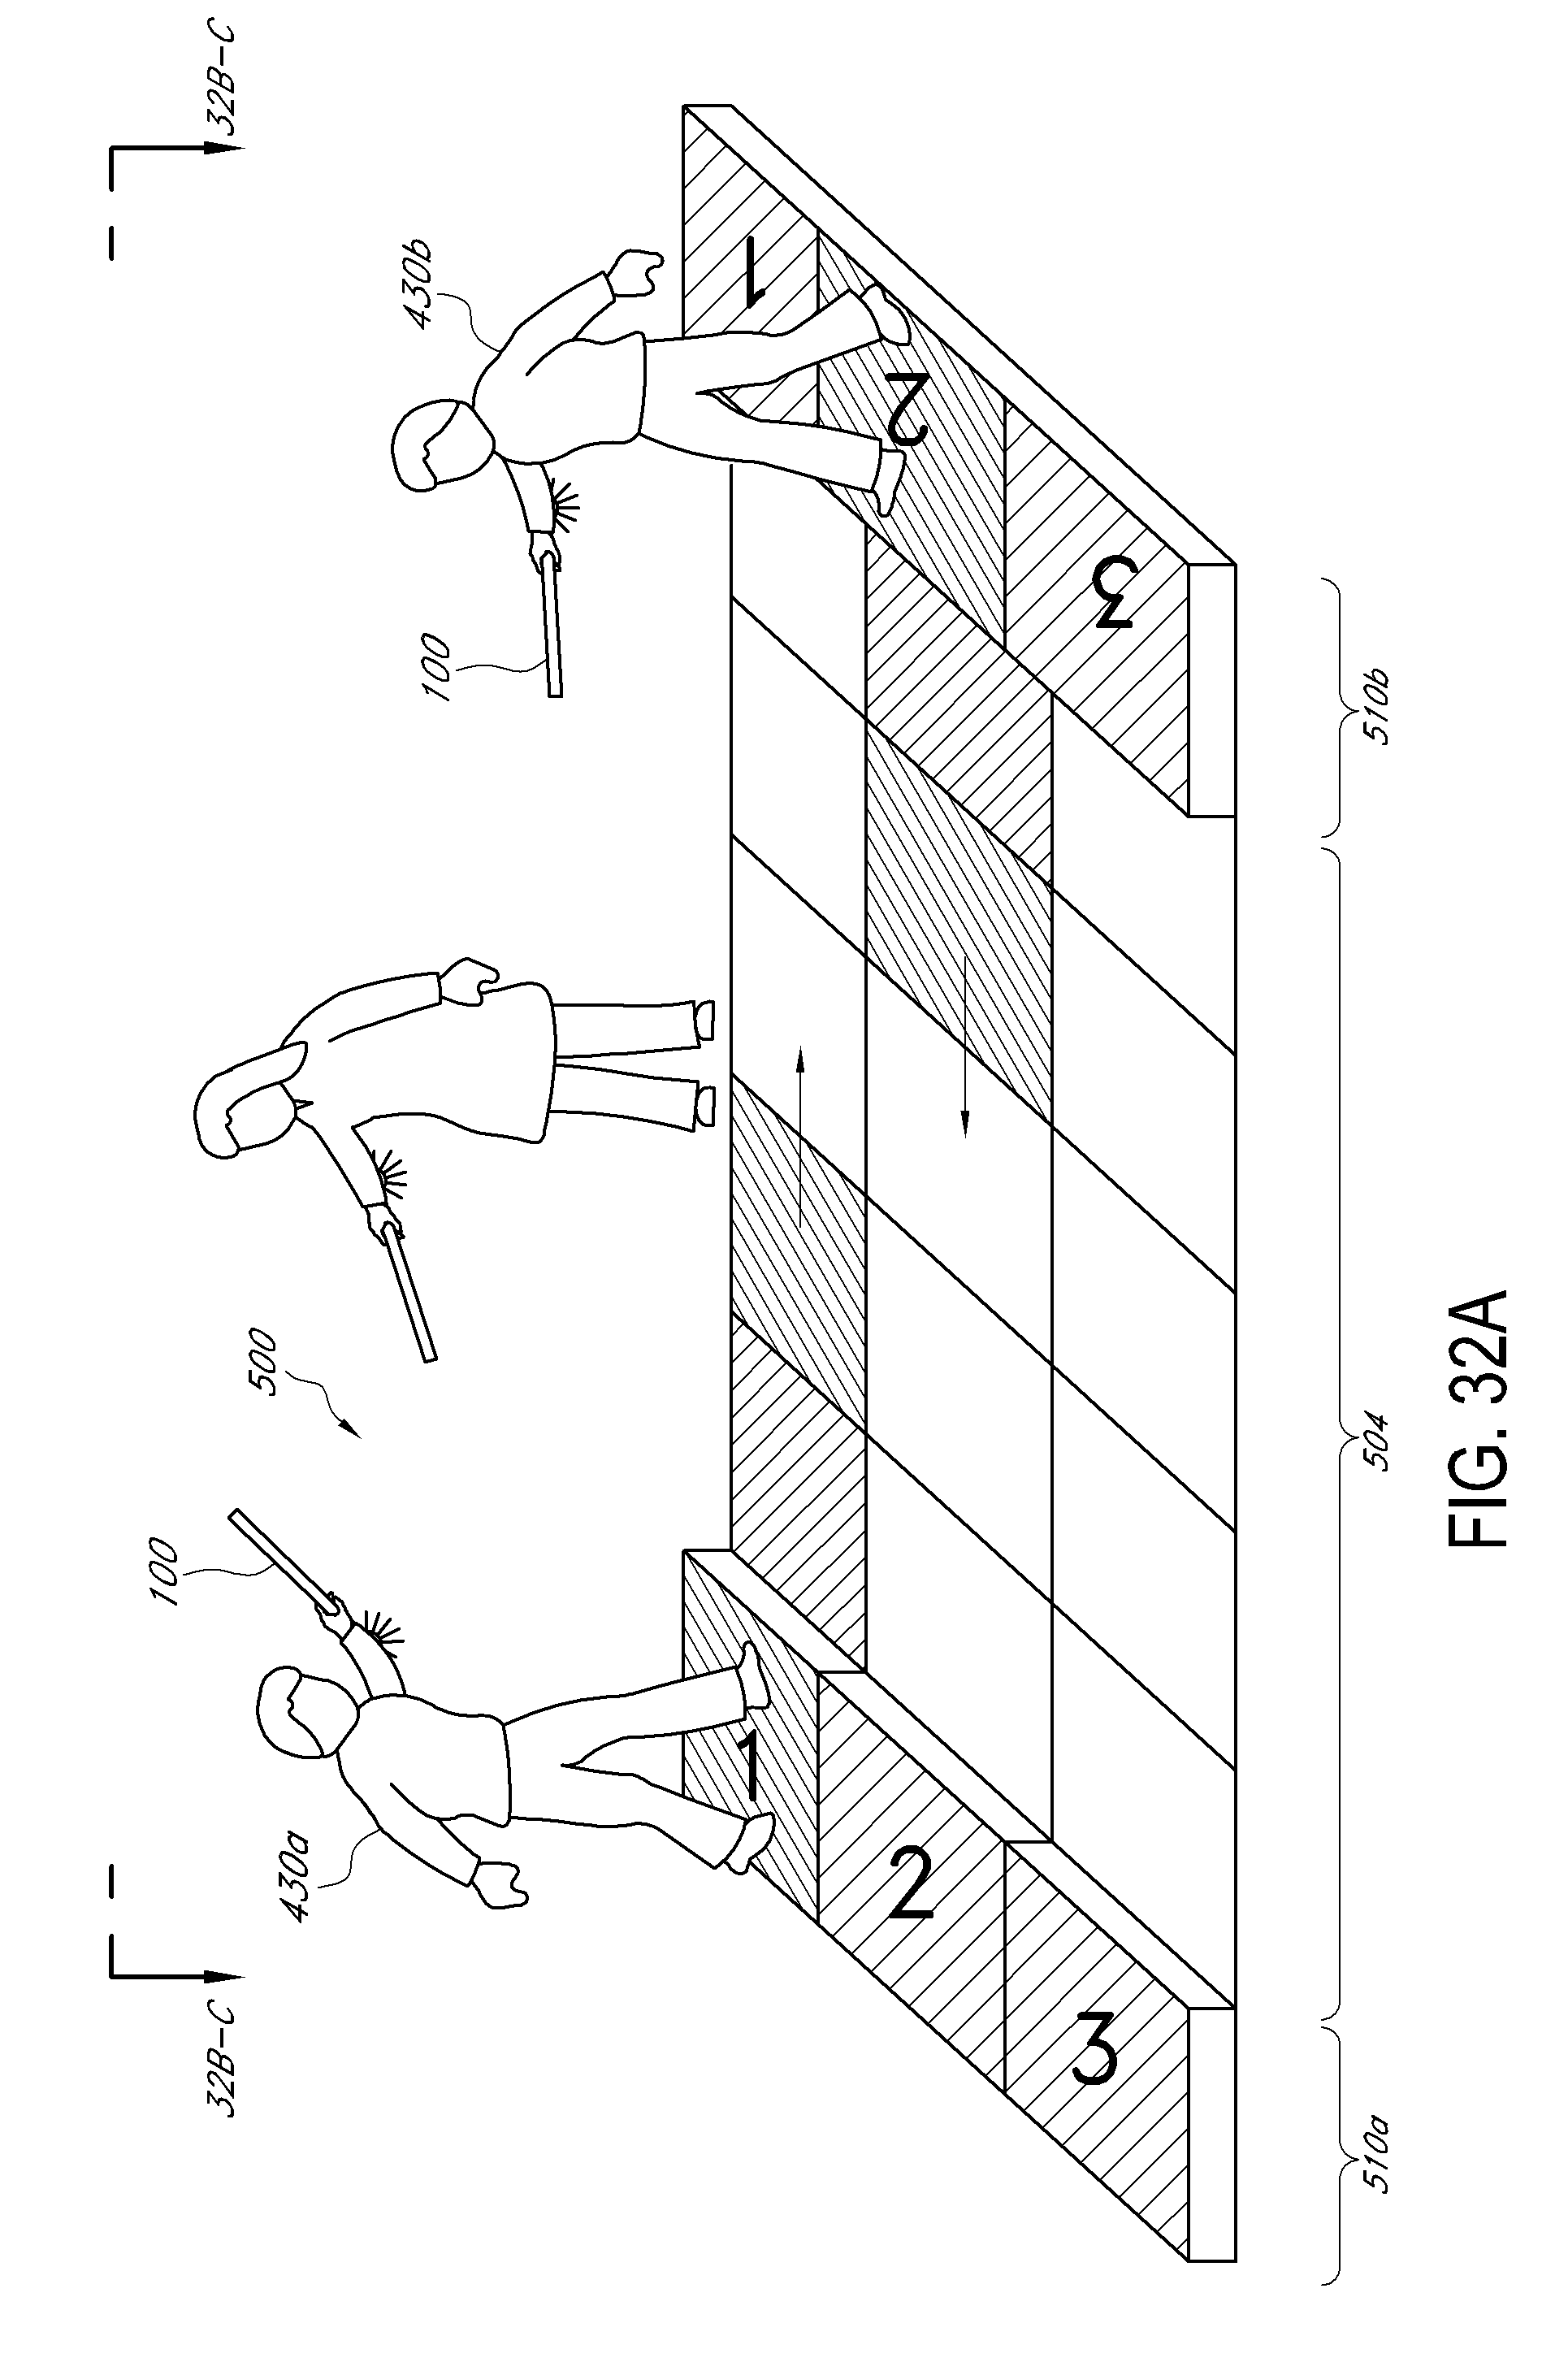 Patent Us 9039533 B2 F500 Cheap Water Level Sensor Circuit With Gps Vehicle Tracker Smd Images